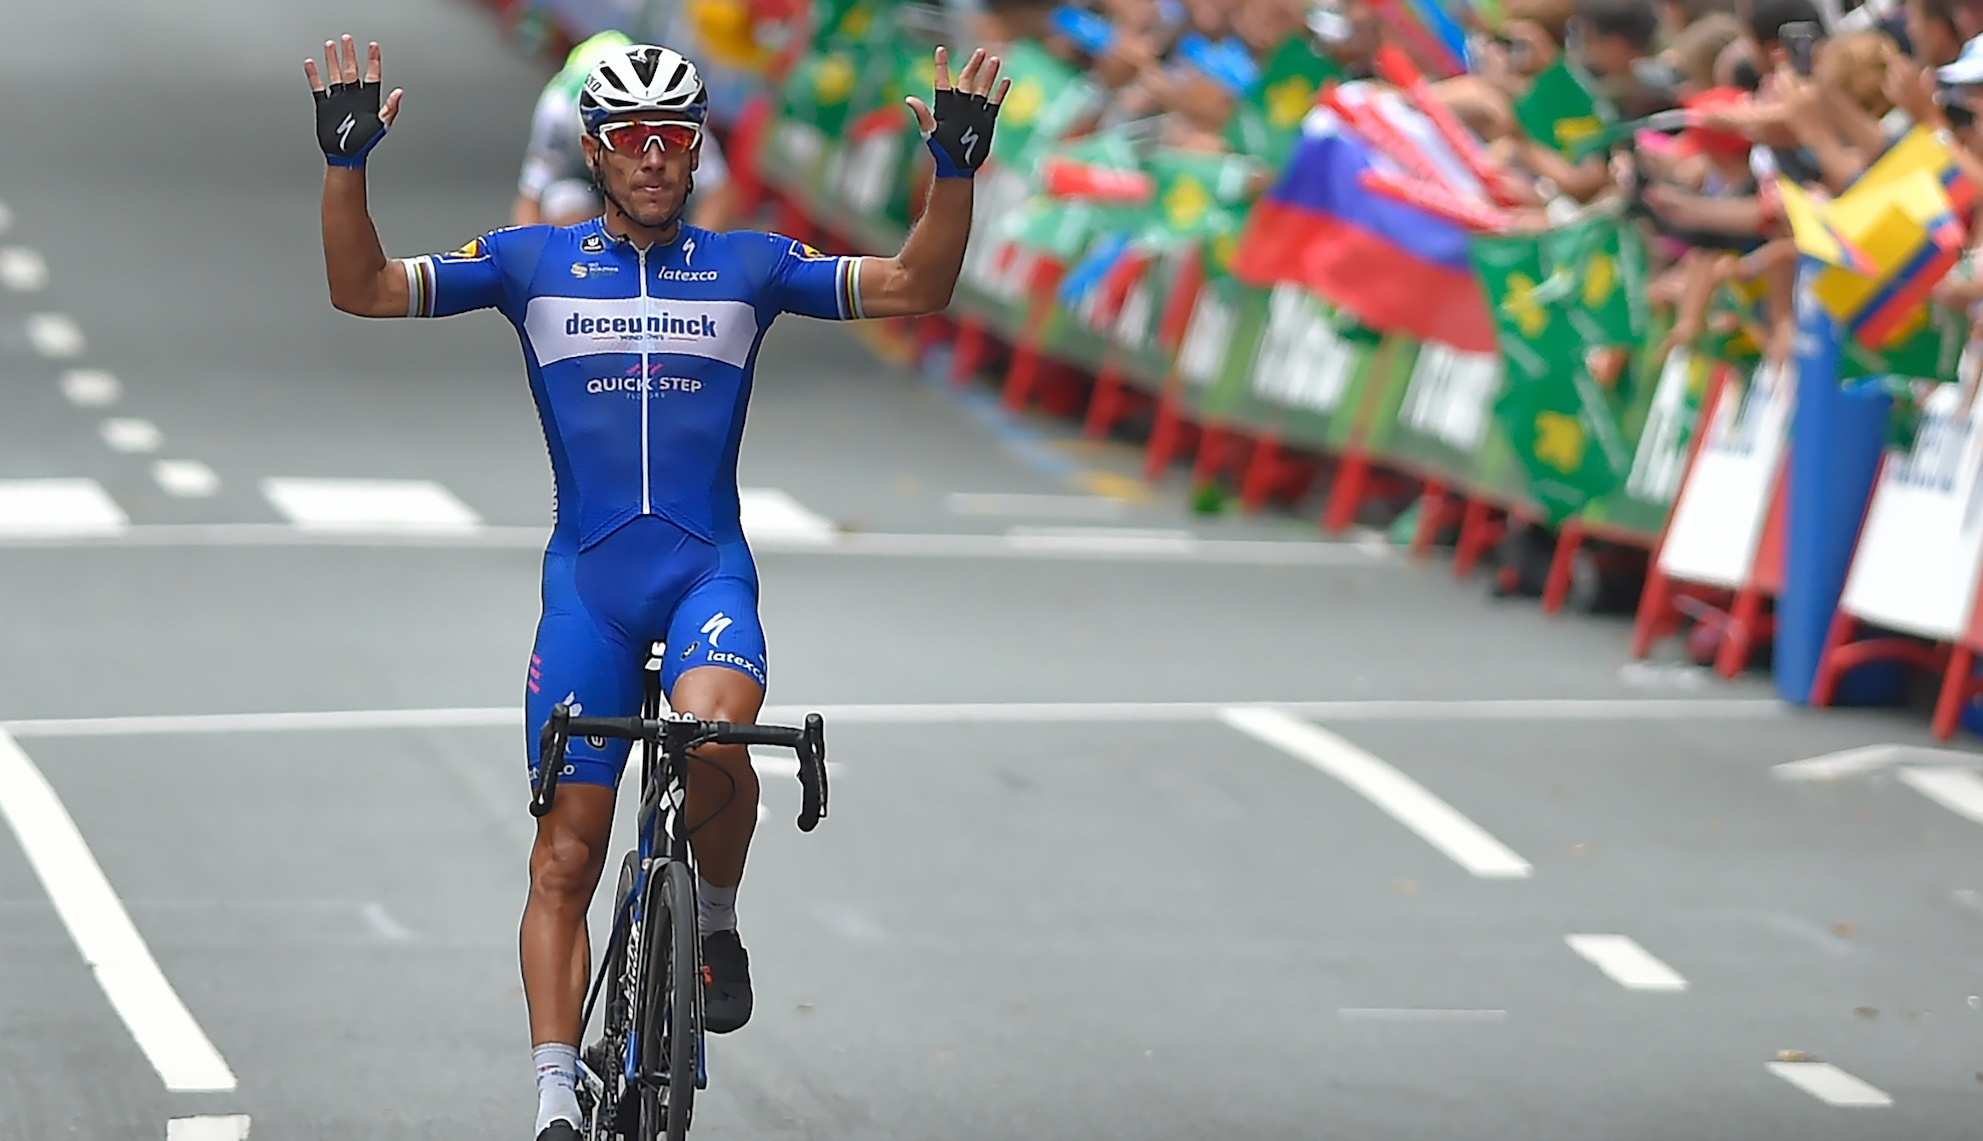 Philippe Gilbert wins from breakaway on stage 12 of the Vuelta a España 2019